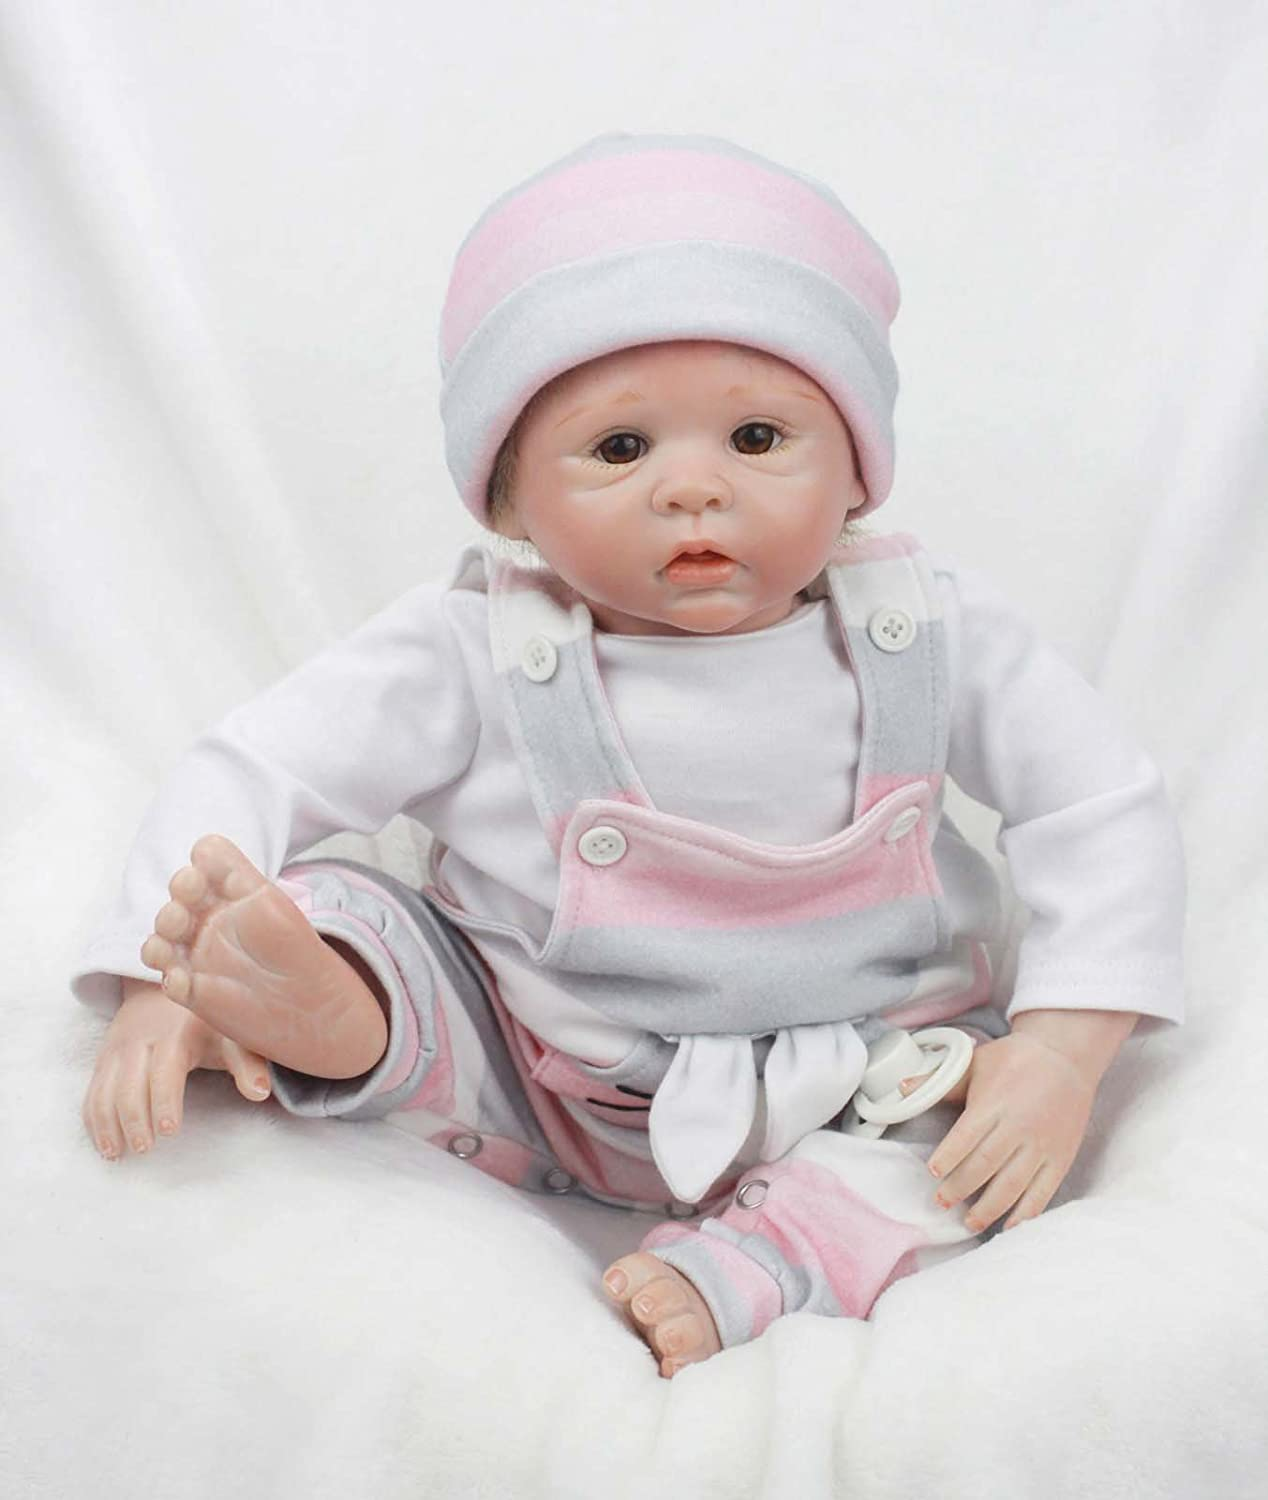 Cute Kitty Terabithia 18 inch Real Life Reborn Baby Doll,Preemie Baby Doll Handcrafted in Soft Vinyl Like Silicone and Weighted Cloth Body